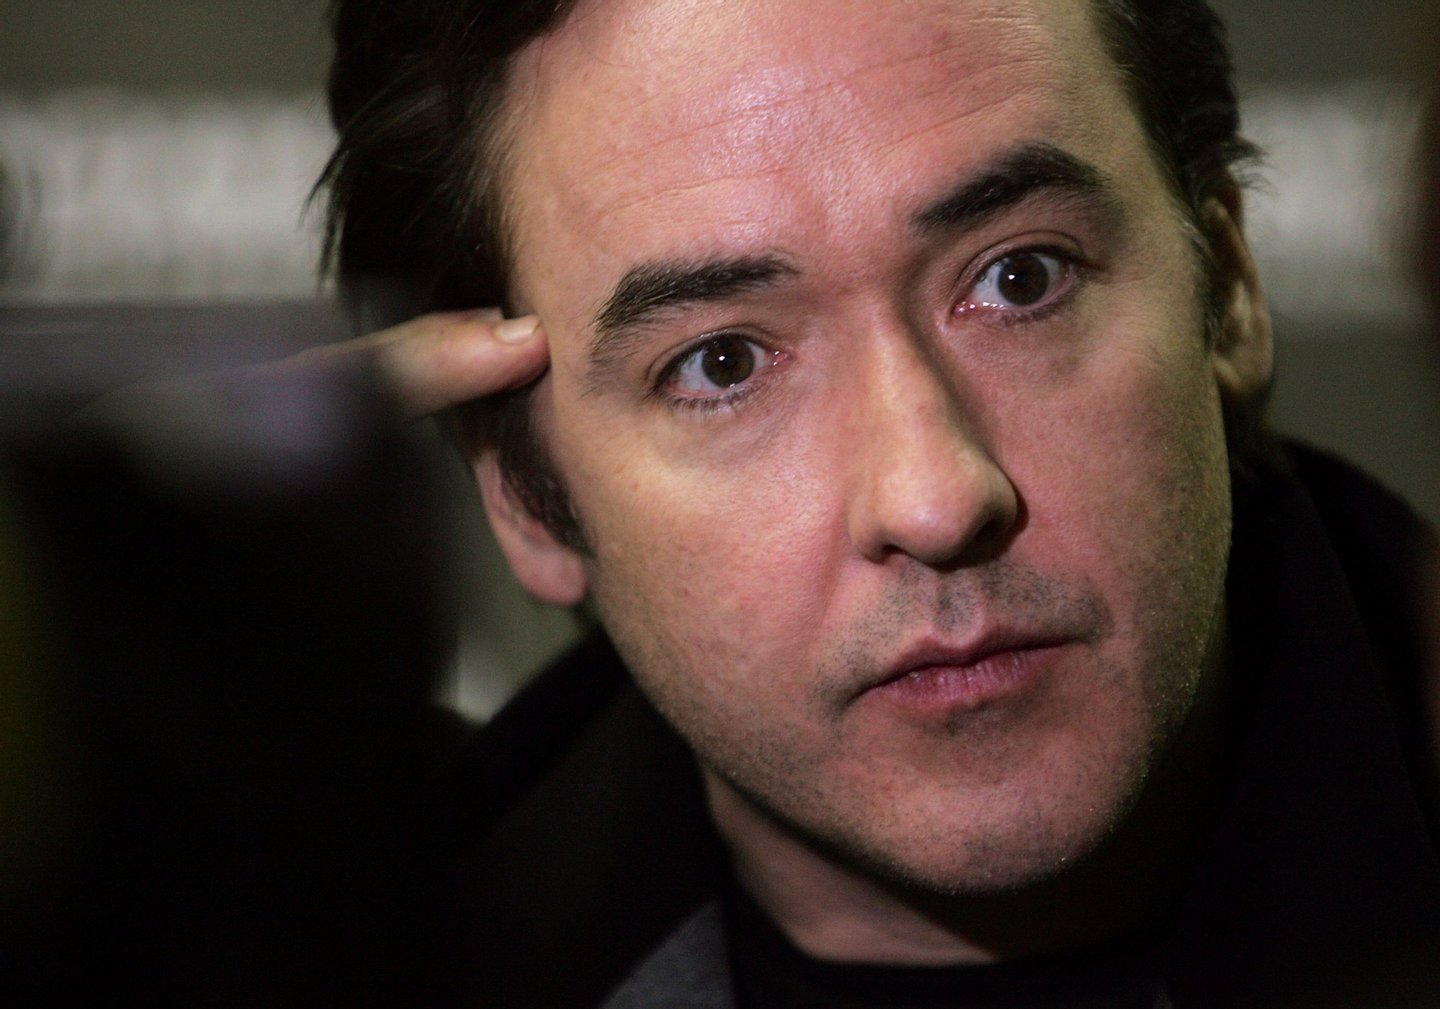 """PARK CITY, UT - JANUARY 20: Actros John Cusack talks to the media during arrivals at the """"Grace Is Gone"""" premiere held at the Racquet Club during the 2007 Sundance Film Festival on January 20, 2007 in Park City, Utah. (Photo by Peter Kramer/Getty Images)"""